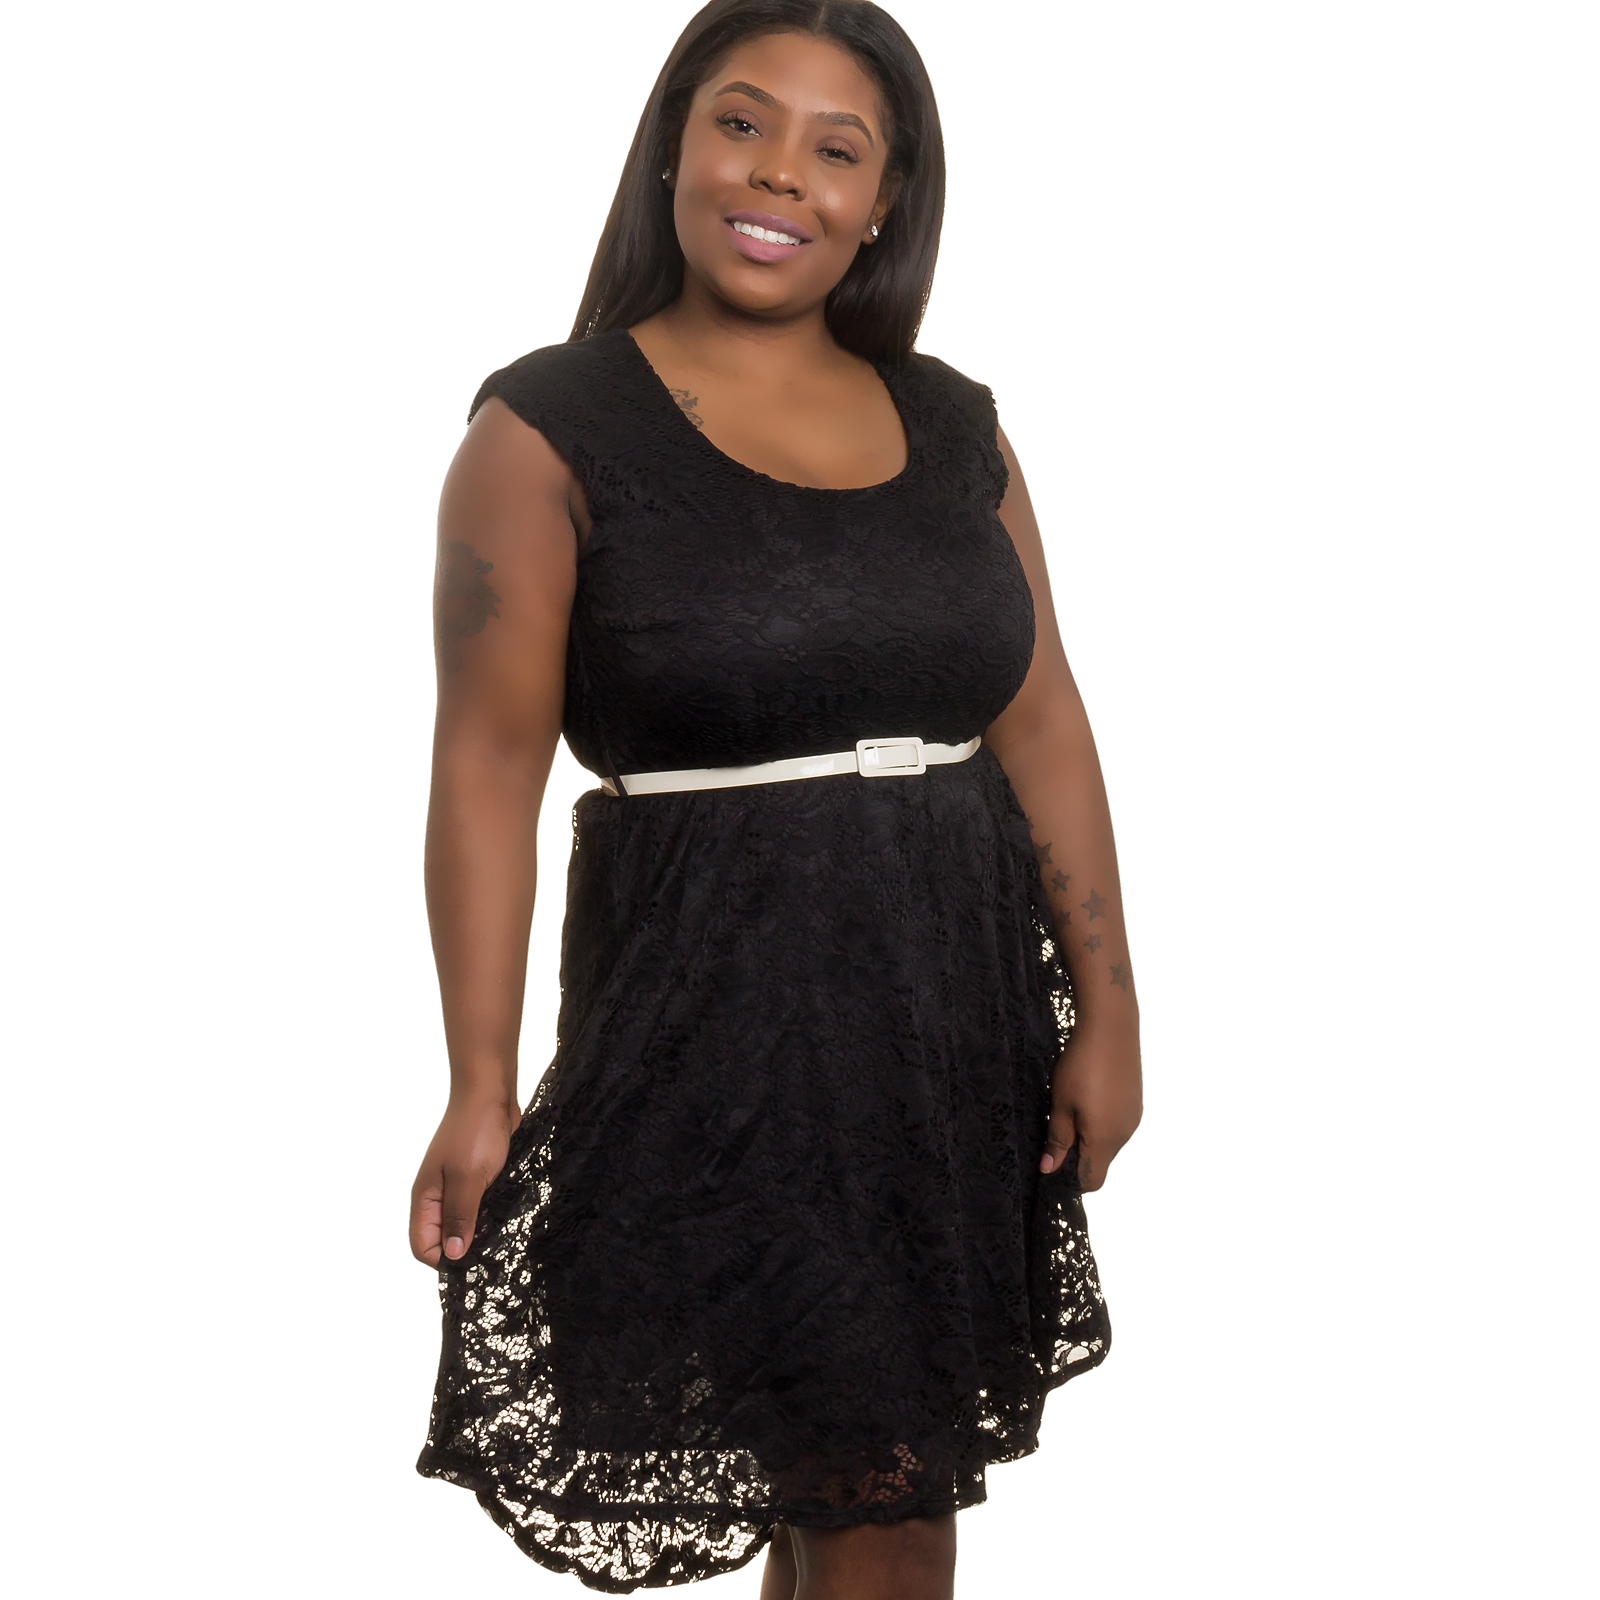 SILVER LILLY NEW Women Junior Plus Size Crochet Lace Evening Dress (Black, 2X)